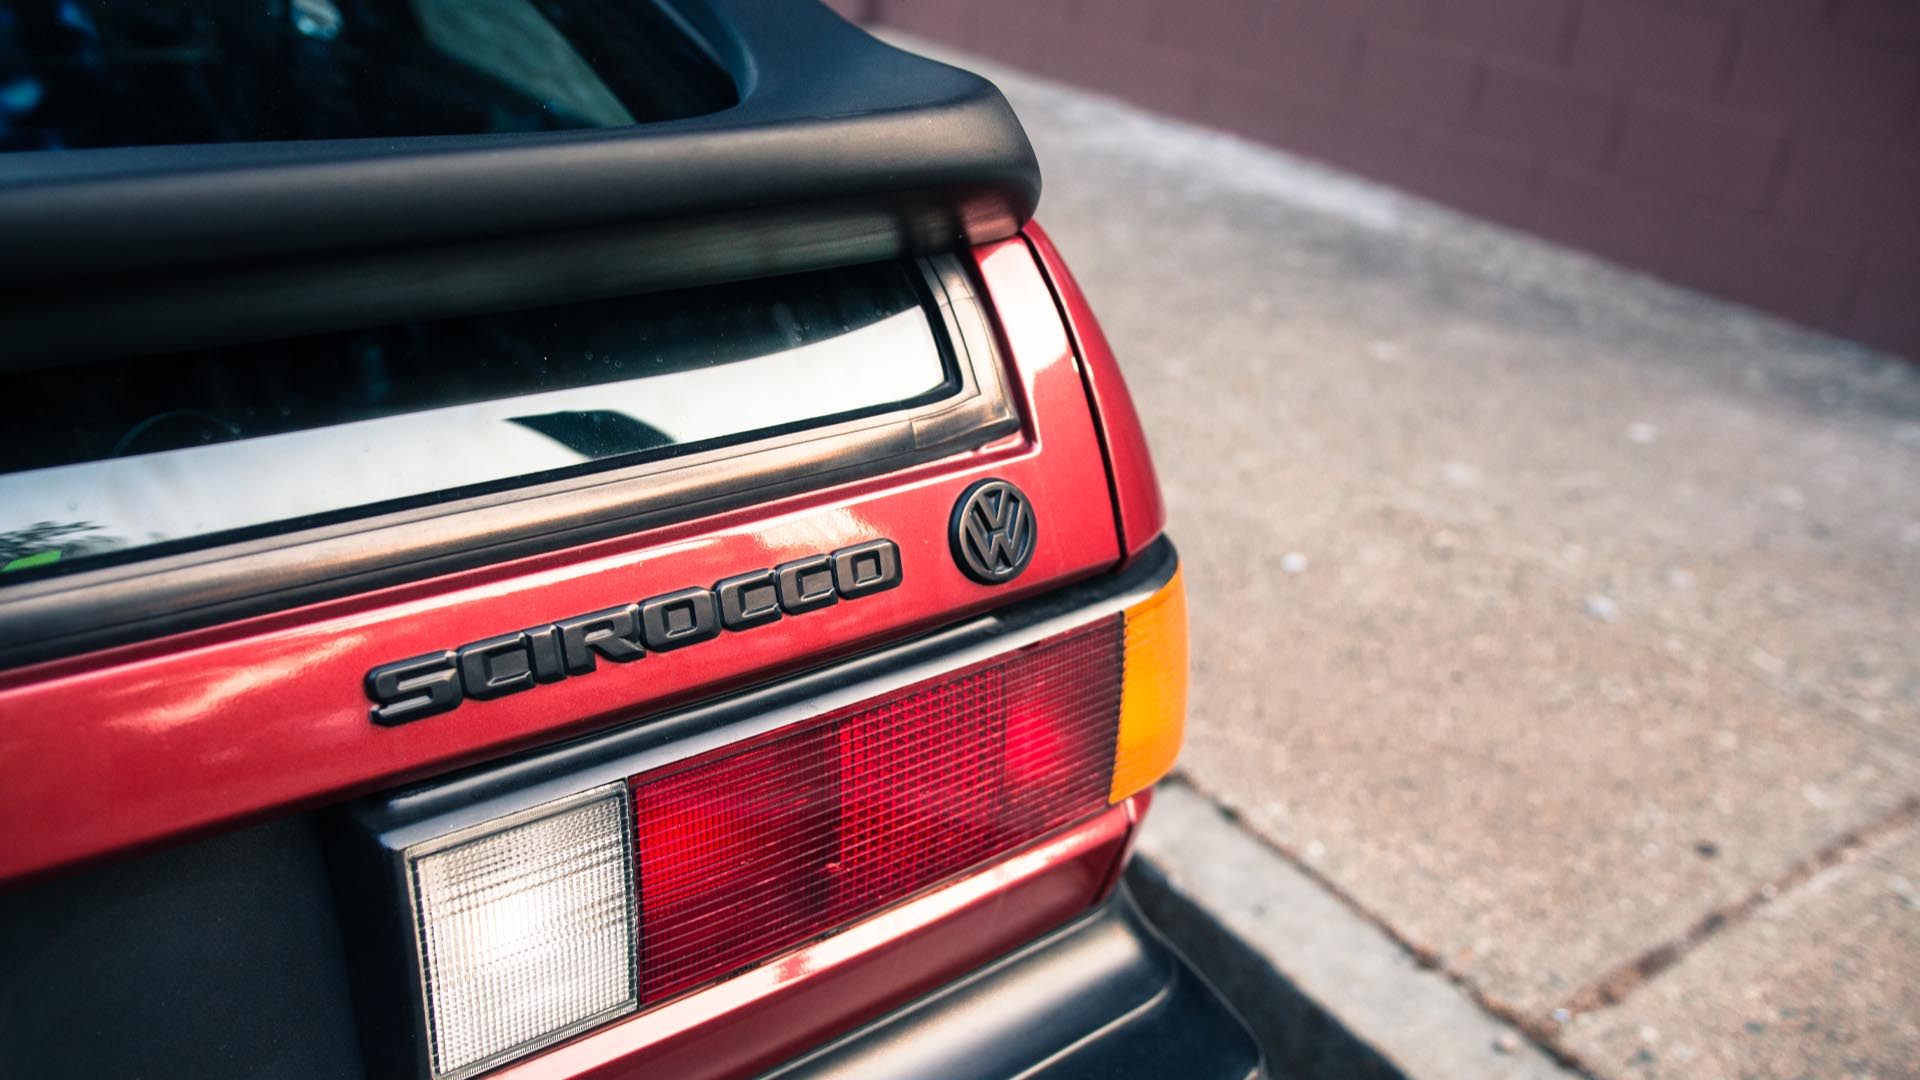 Volkswagen Scirocco - The Golf's Forgotten Sibling